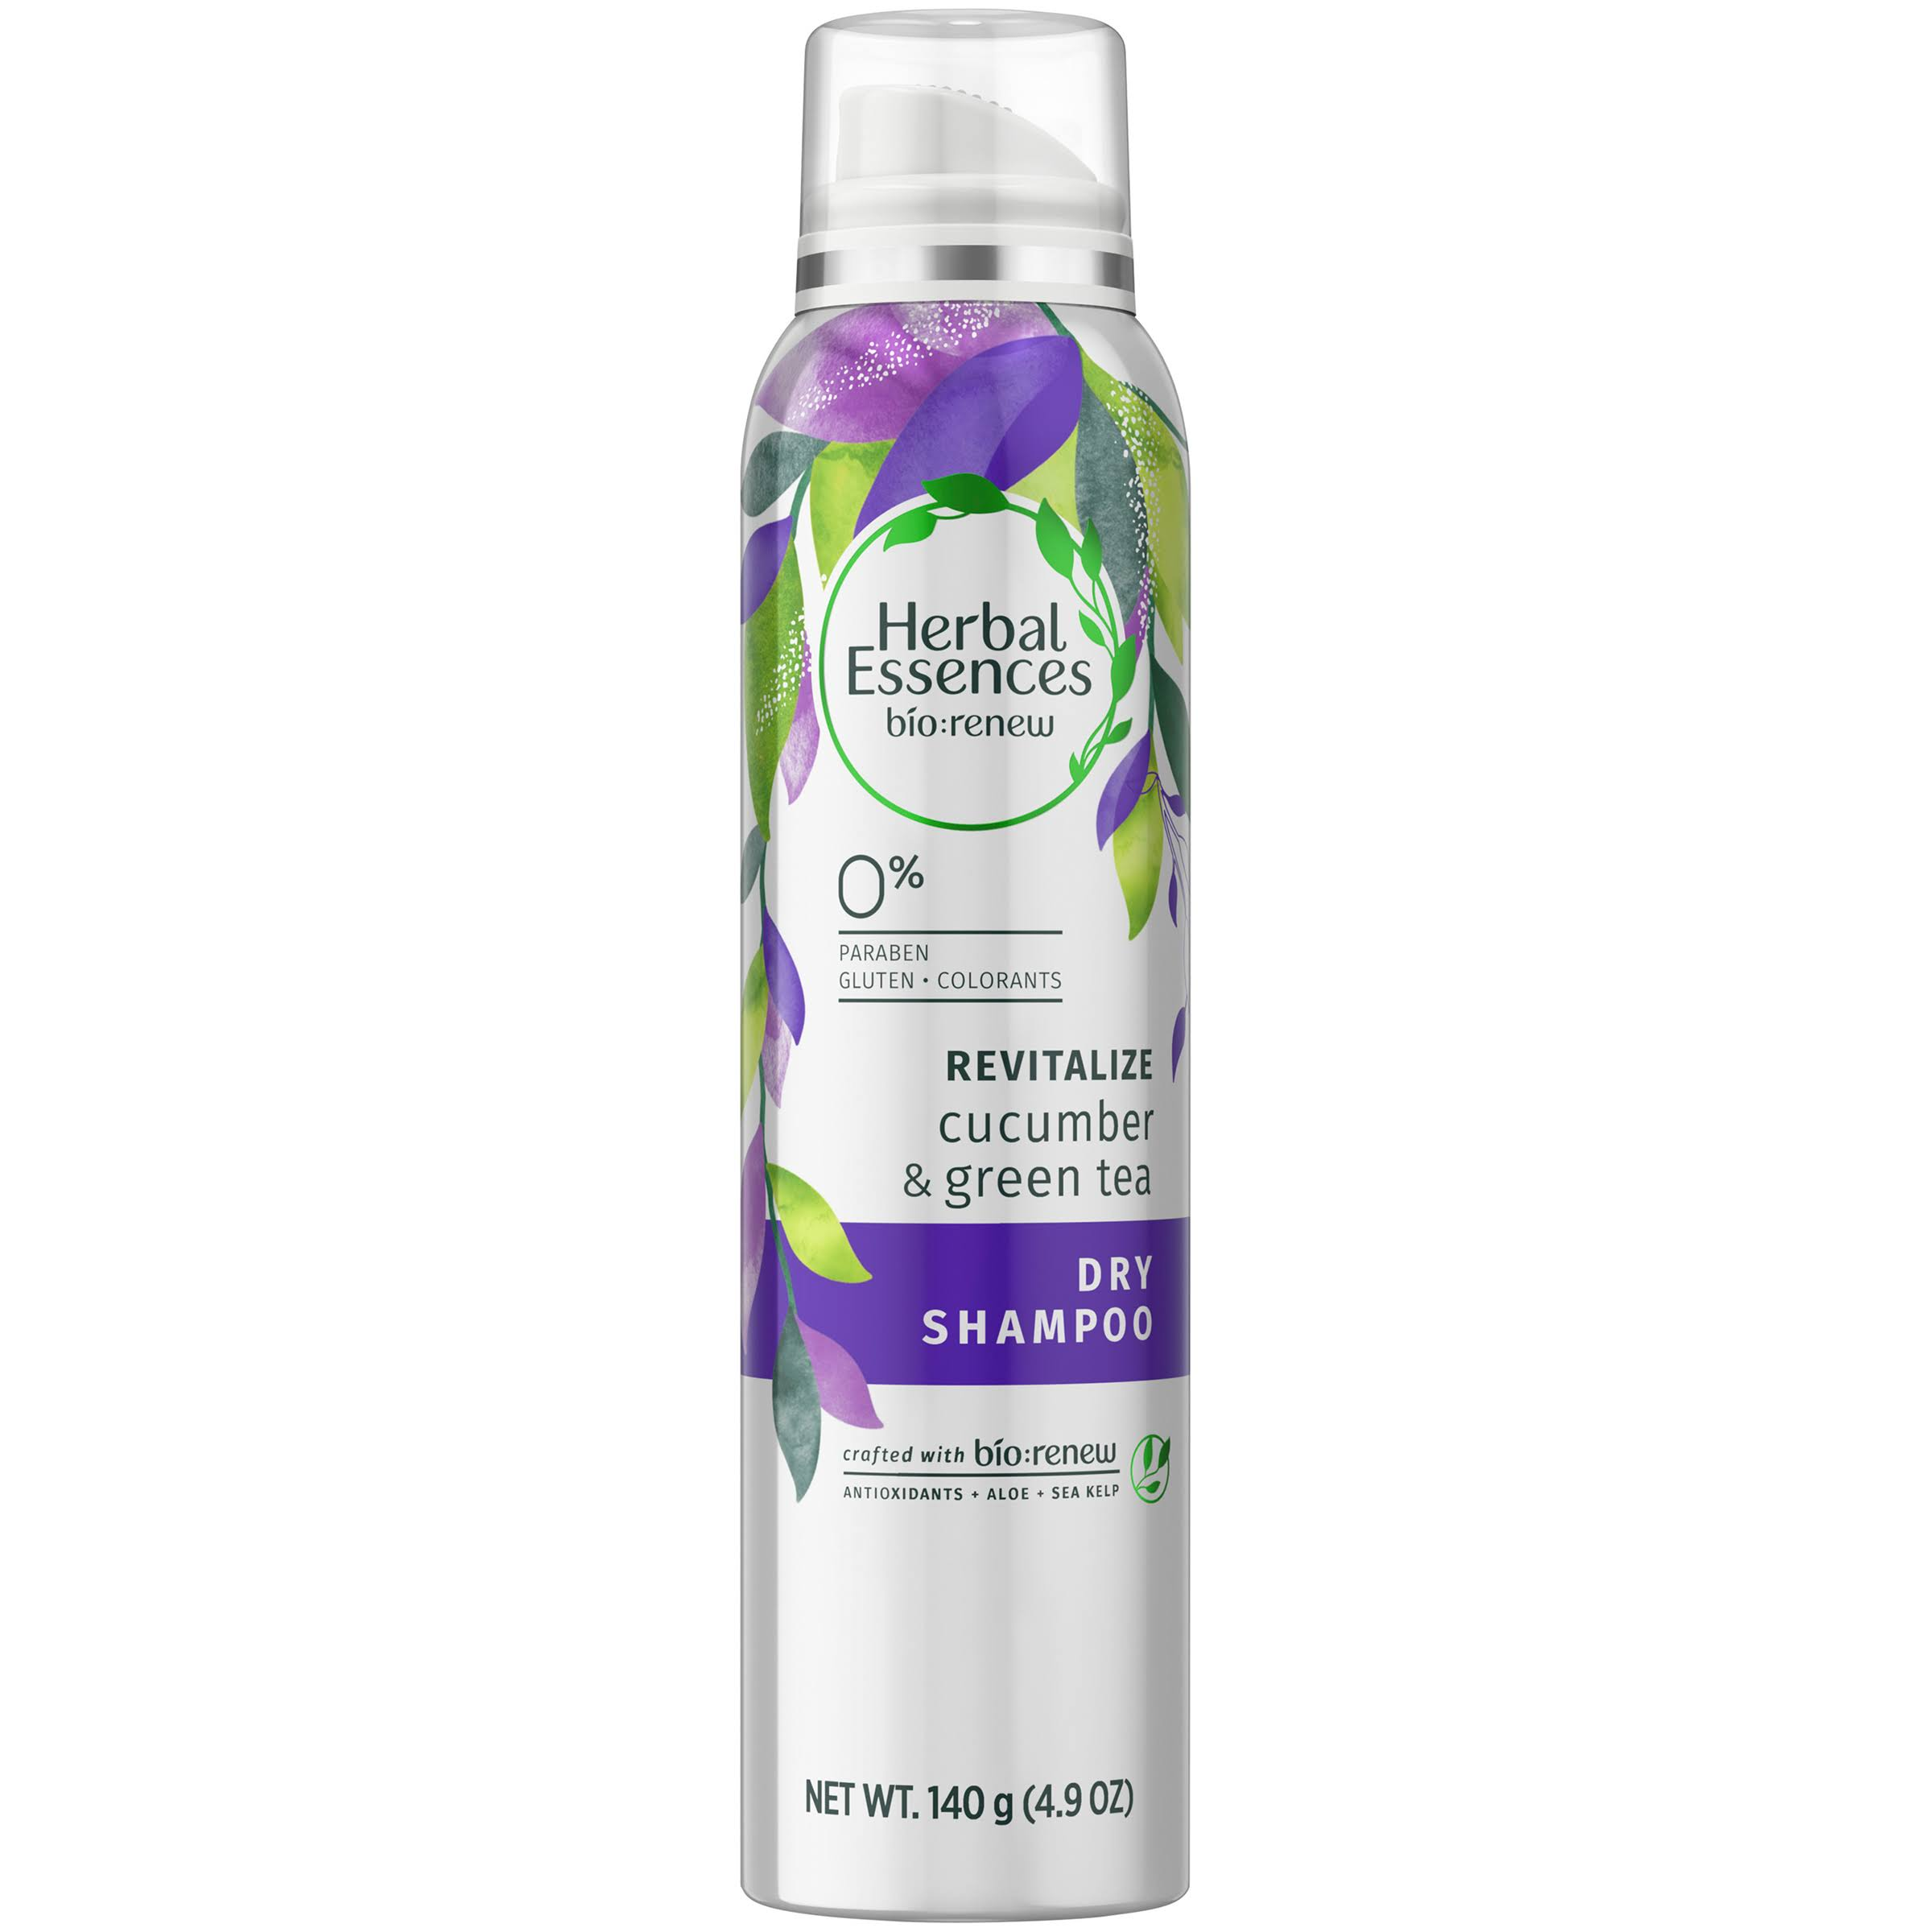 Herbal Essences Bio Renew Revitalize Dry Shampoo - Cucumber & Green Tea, 140g